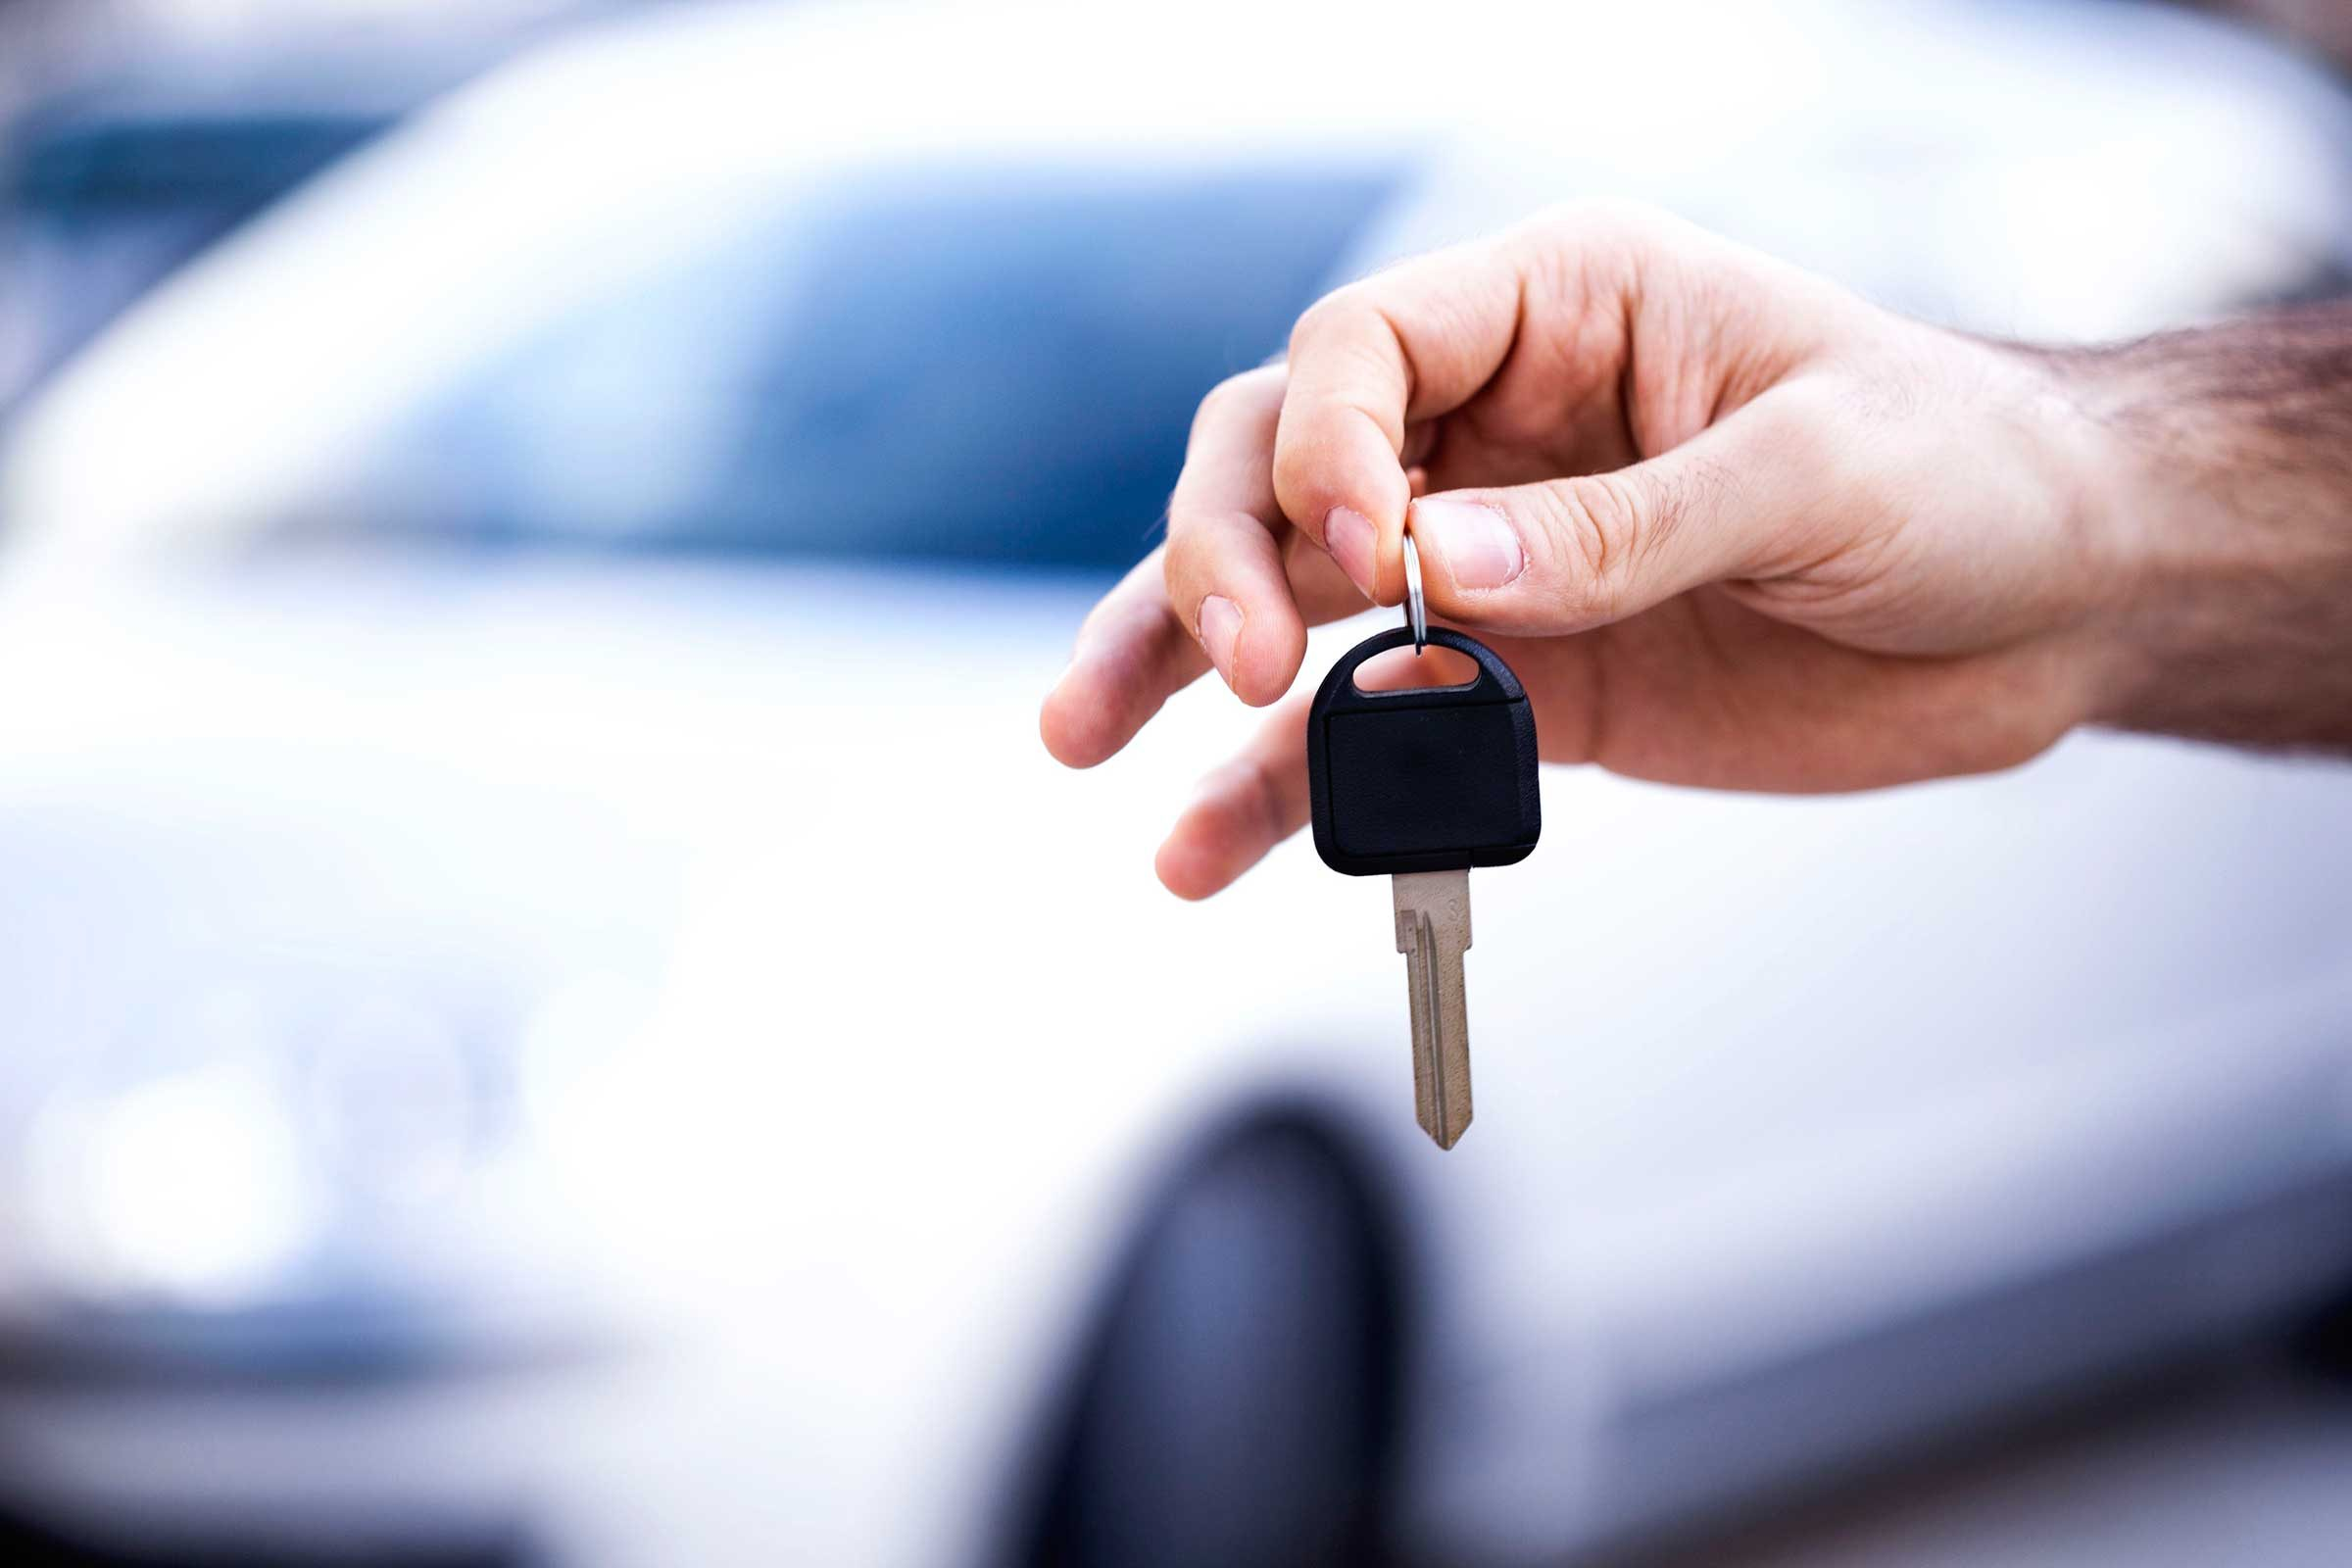 tips-for-buying-a-car-what-the-dealership-wont-tell-you-2